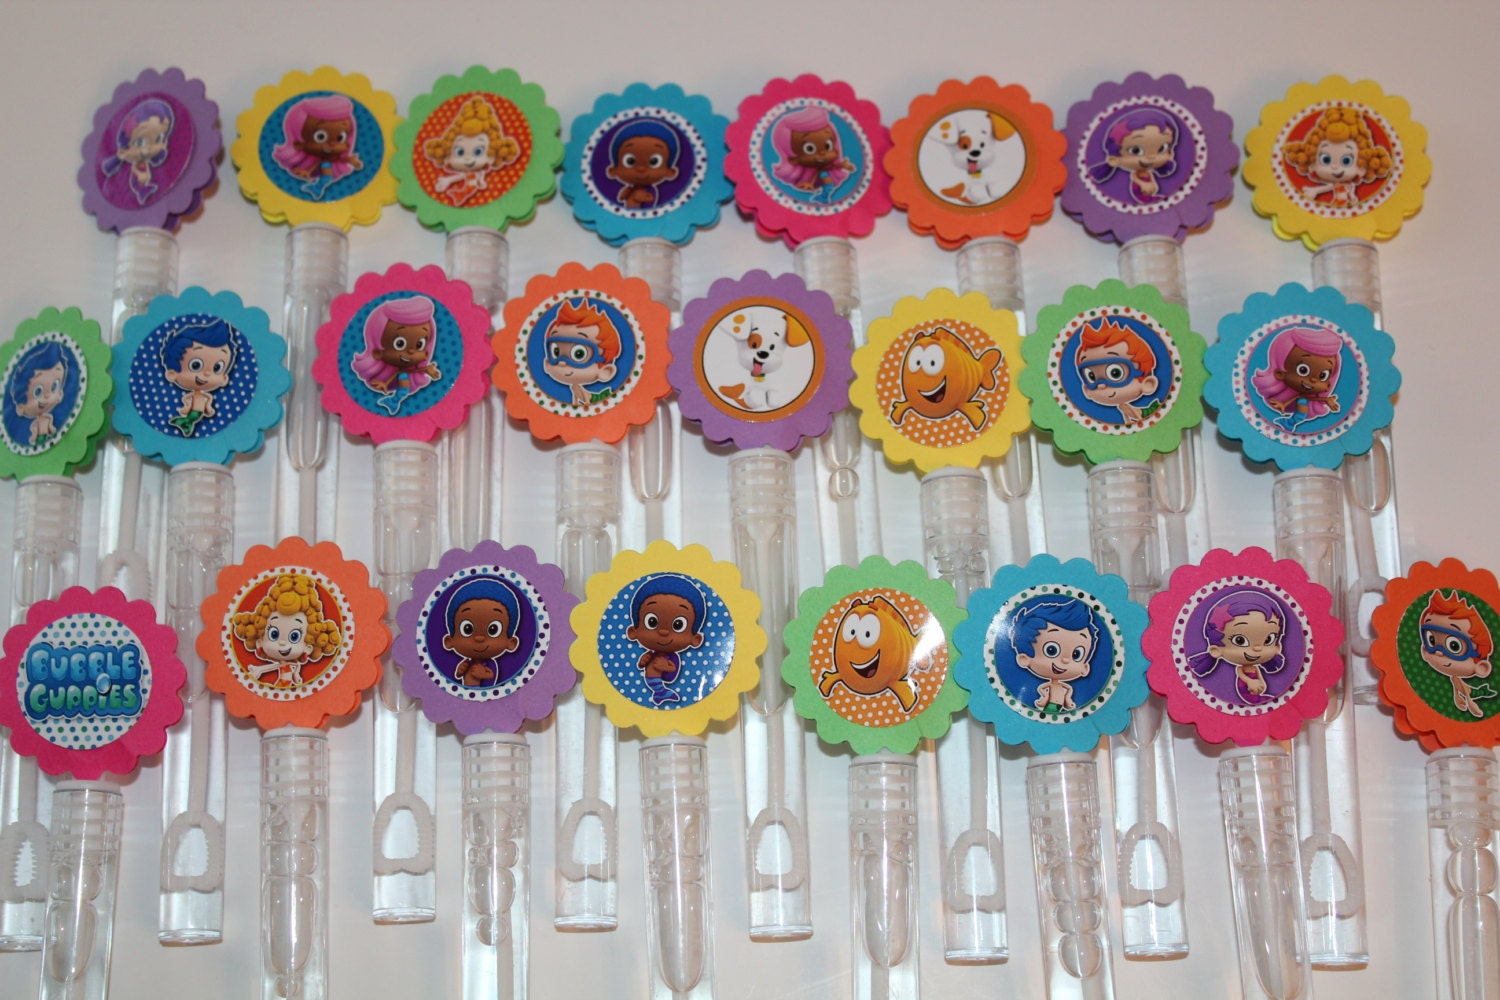 Bubble guppies mini bubble wands birthday party favors set for Mini bubble wands